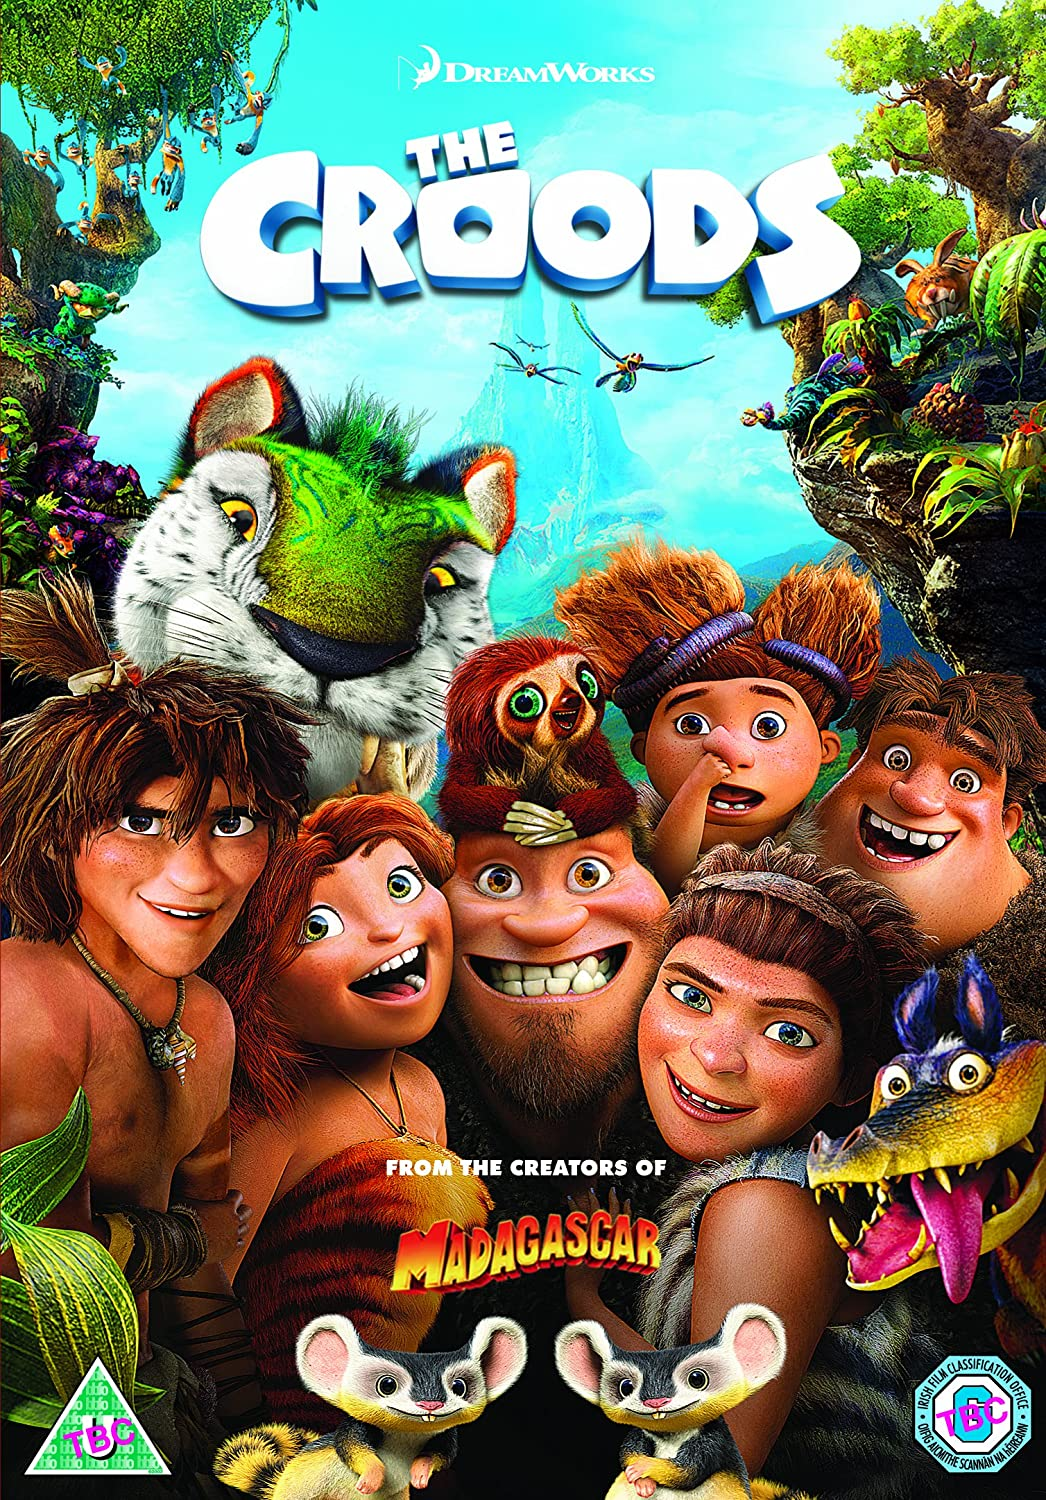 Cheap DVD.The Croods.jpg